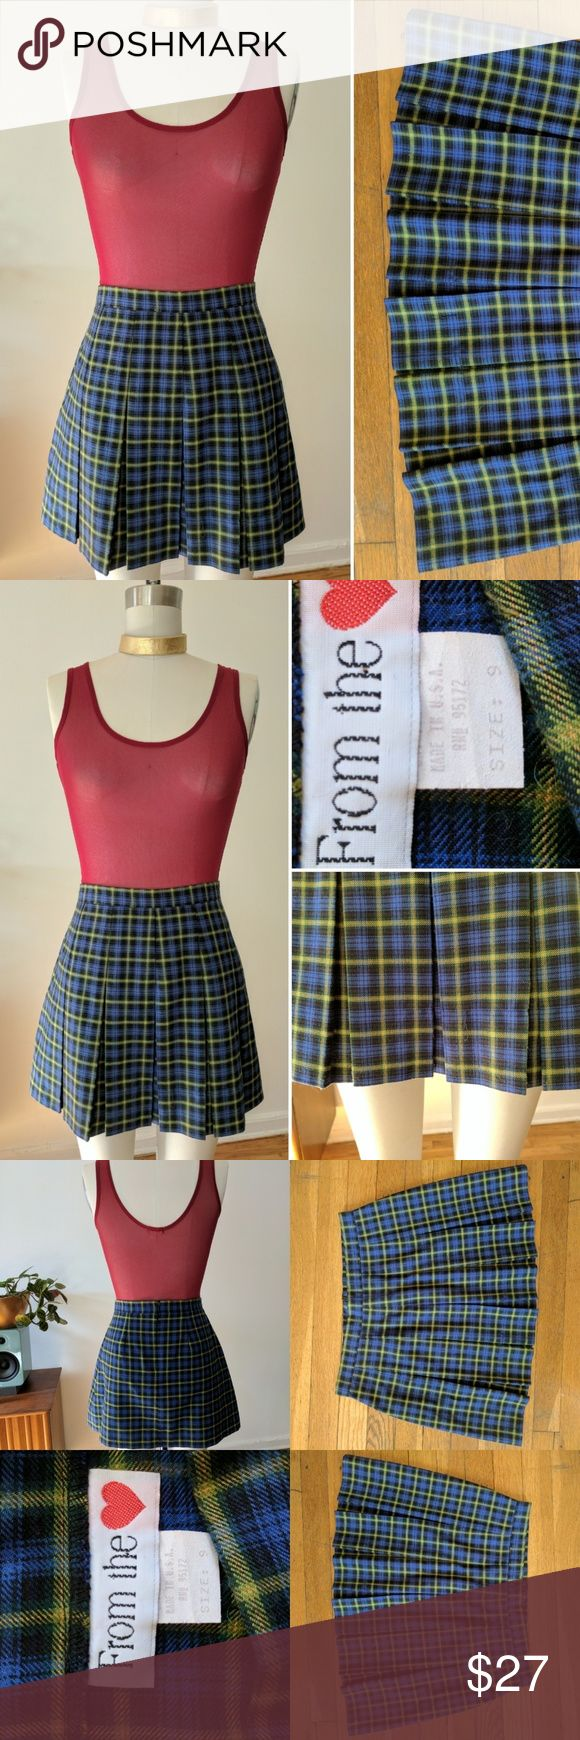 VINTAGE 1990s Plaid Pleated MINI SKIRT schoolgirl TRUE VINTAGE from the mid nineties, size 9, cute sexy GRUNGE alternative SCHOOLGIRL plaid mini skirt! Pleated front and A-line back with hidden zipper. Designed to sit at the true waist. Flippy schoolgirl pleats and cute short length!  Wear it with thigh-high tights and a velvet choker now, and a crop top and pig-tails later! Hello Brittany!! Bought from SOHO Reformation store. Vintage size 9 fits like a modern size 7-8-9 Perfect condition…